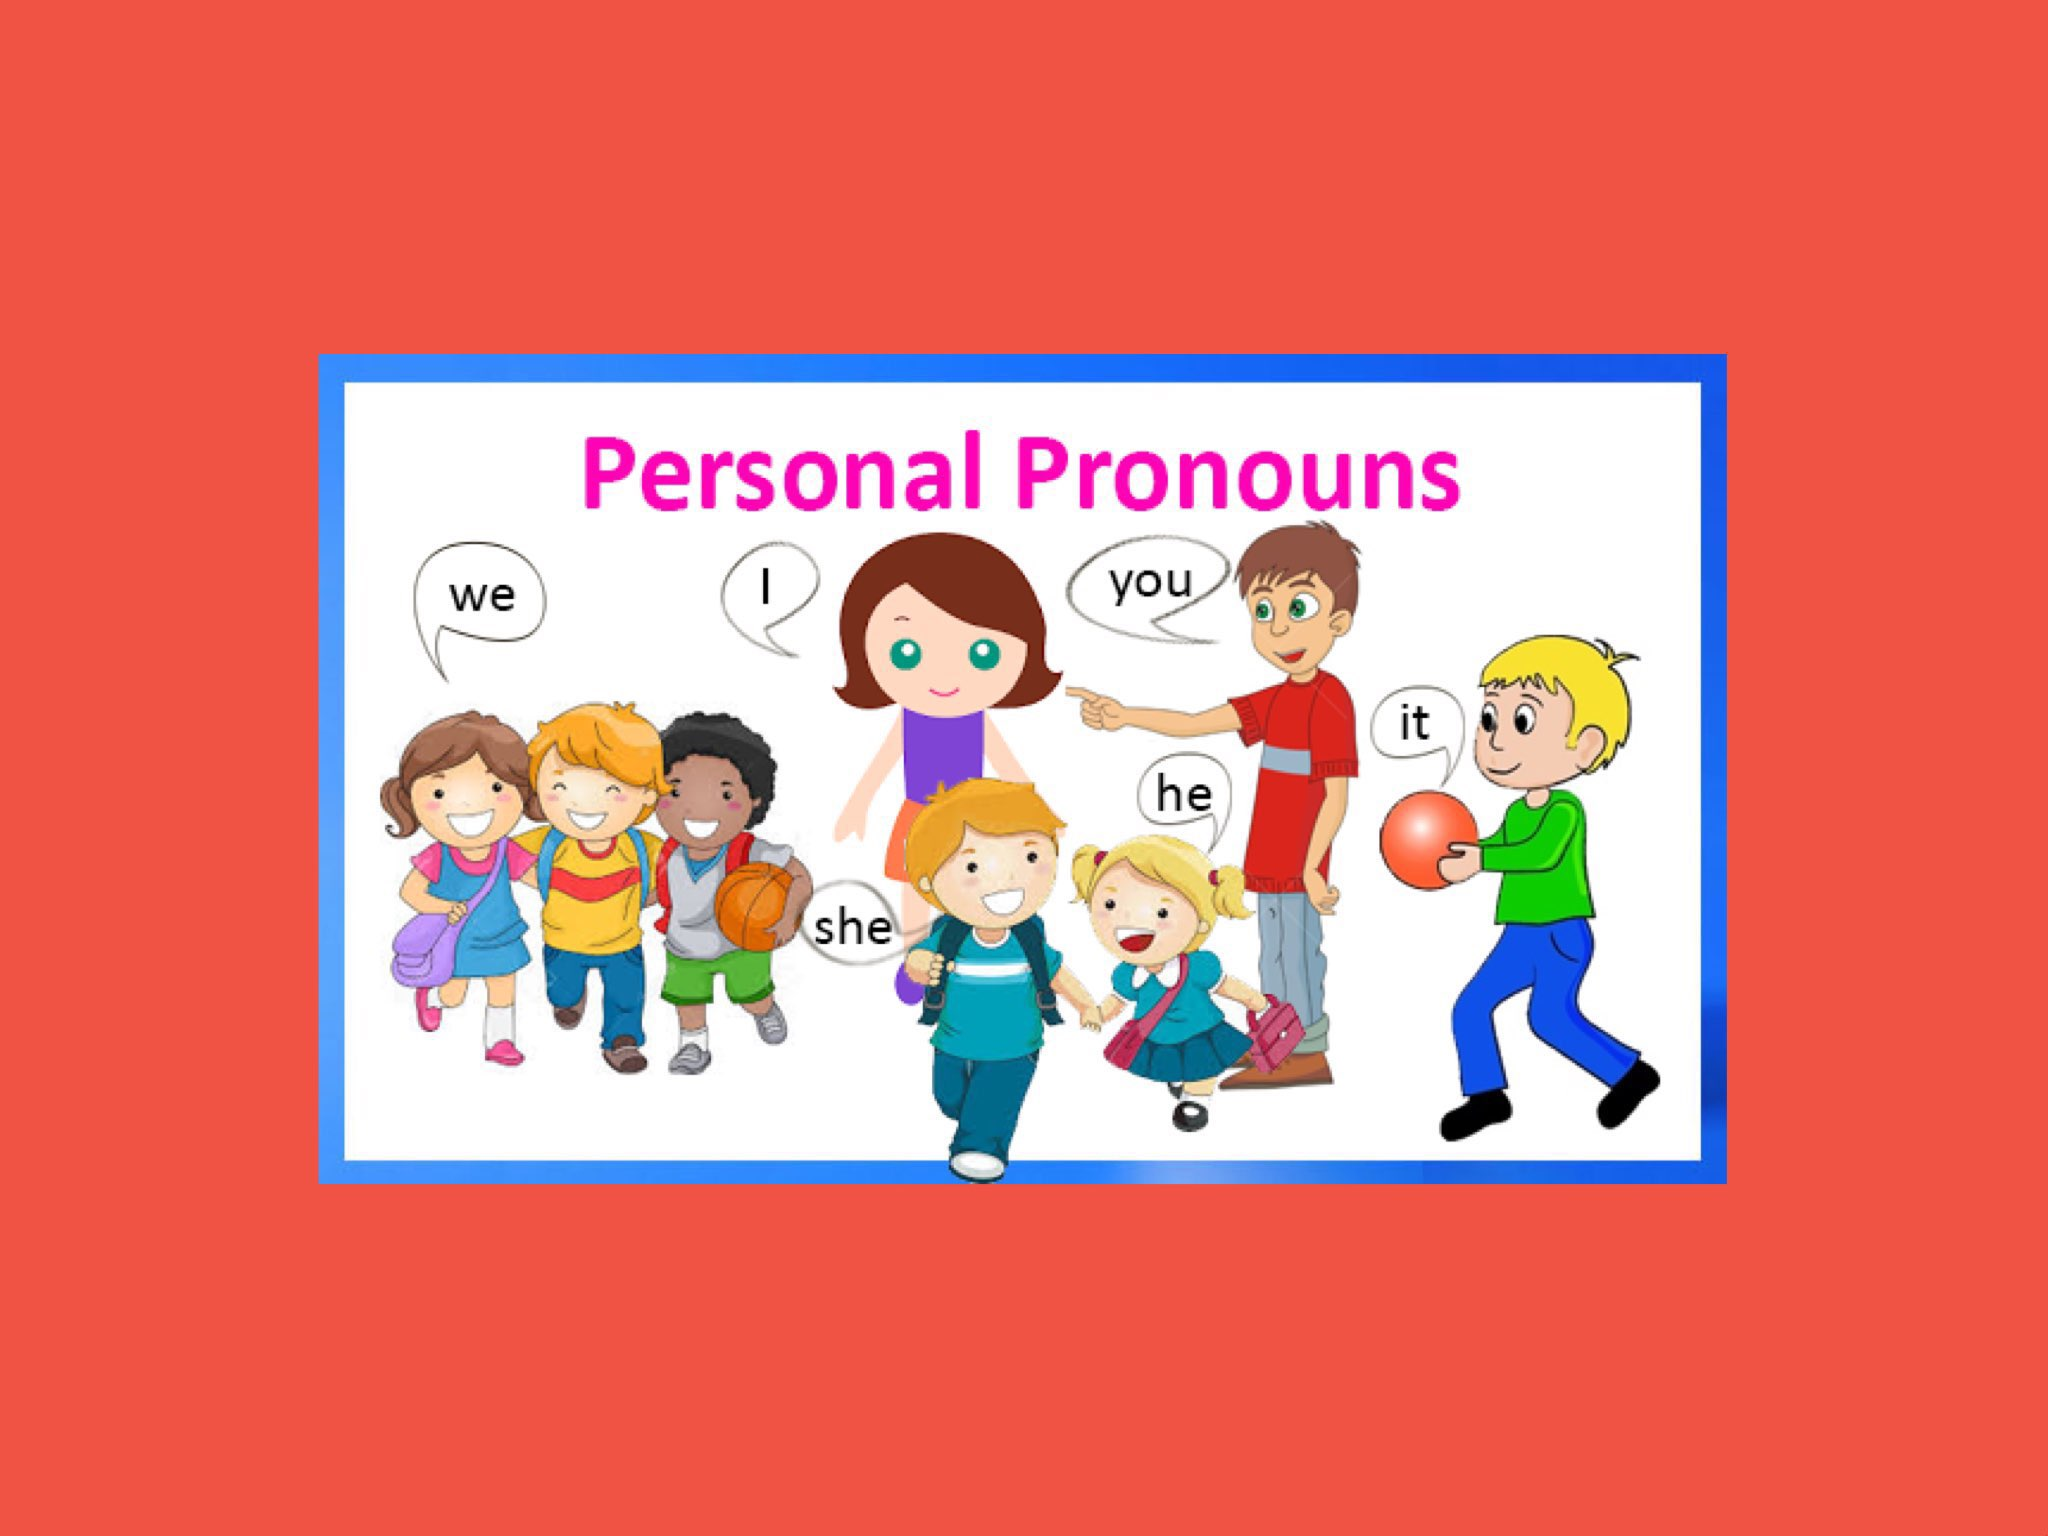 play personal pronouns by laurence micheletti on tinytap